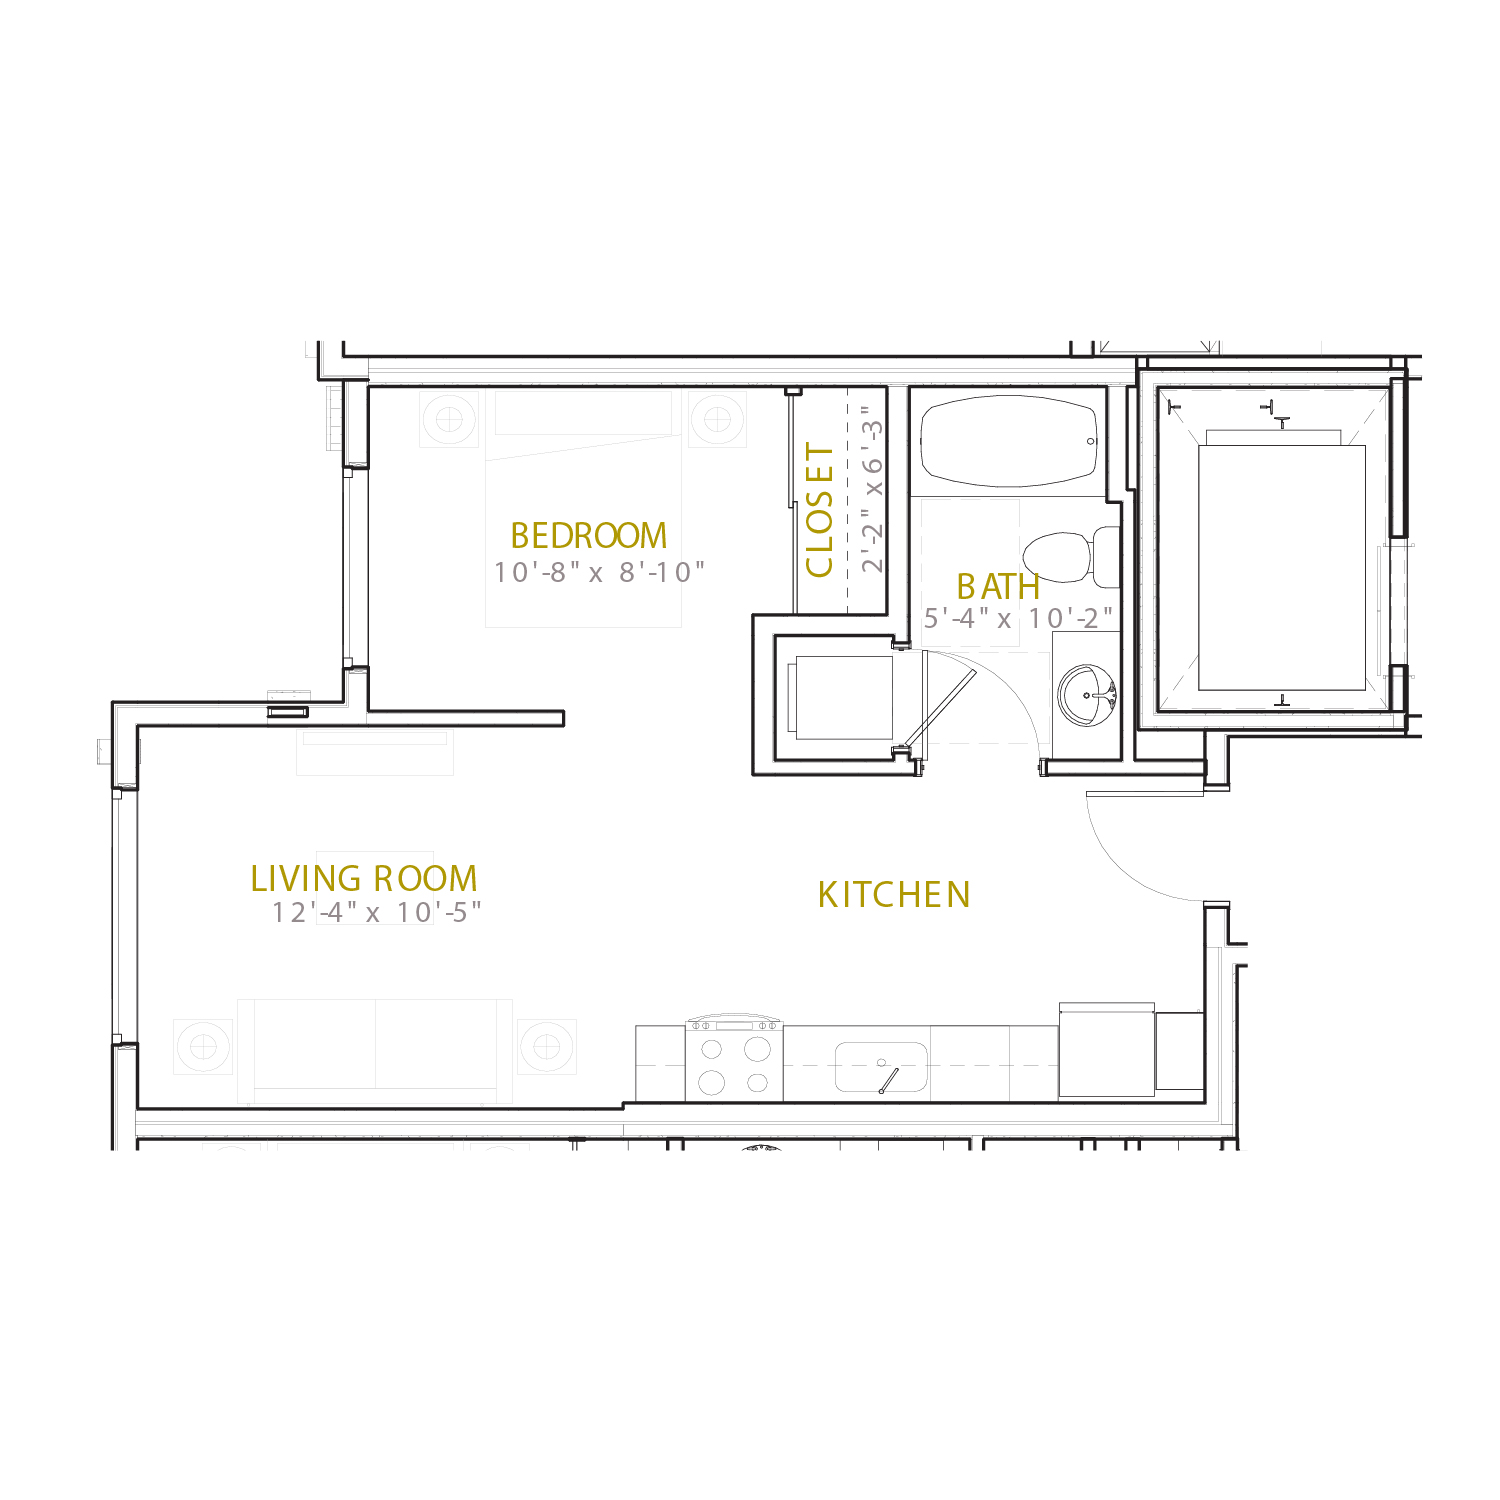 A Two floor plan diagram. A studio apartment with one bathroom and an open kitchen and living space.